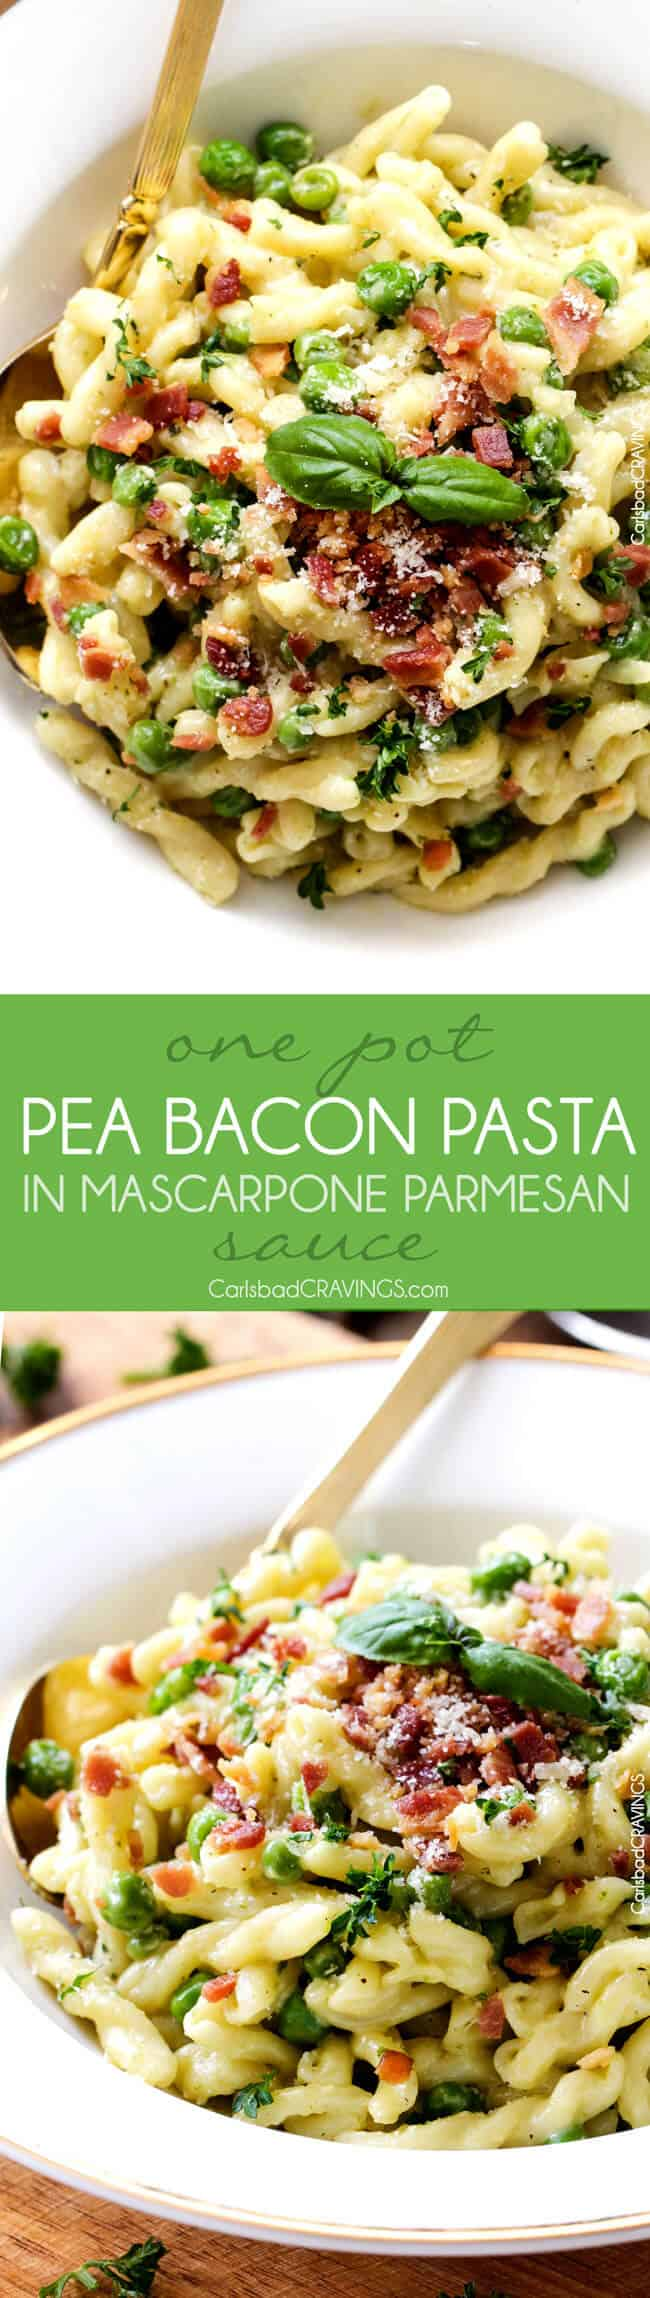 Pea Soup With Pasta And Parmesan Recipes — Dishmaps